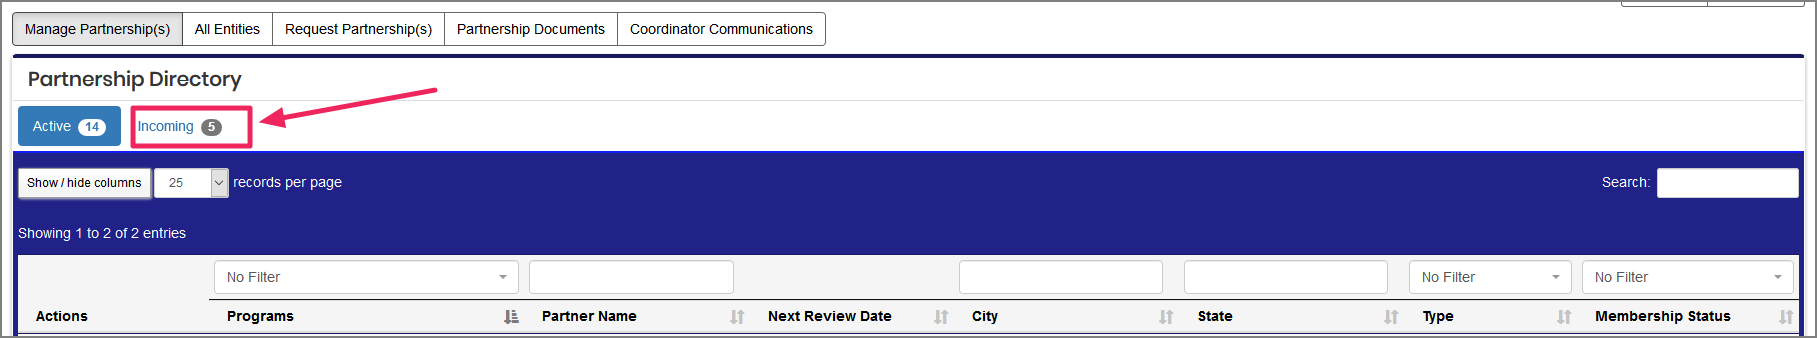 image Partnership Directory pointing to the incoming button